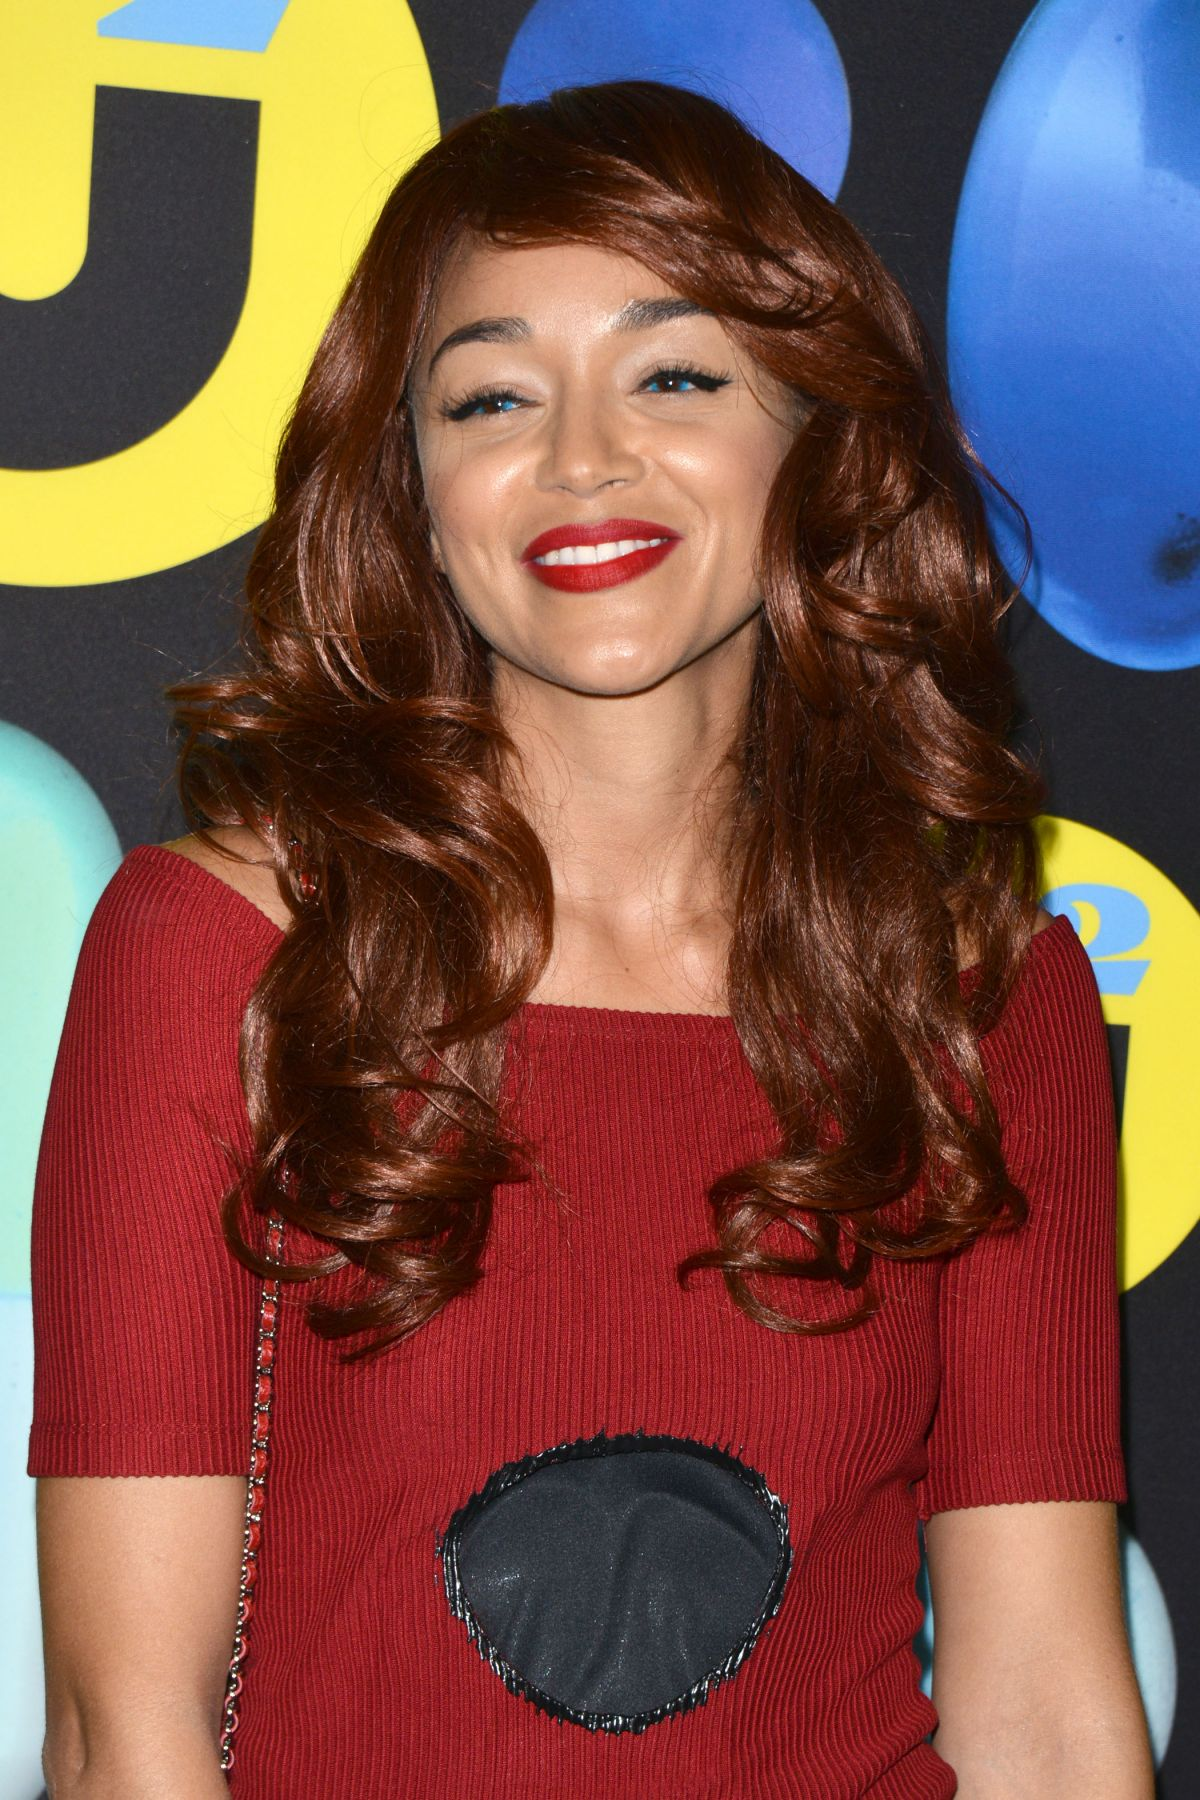 ASHLEY MADEKWE at Just Jared Halloween Party in Hollywood 10/31/2015